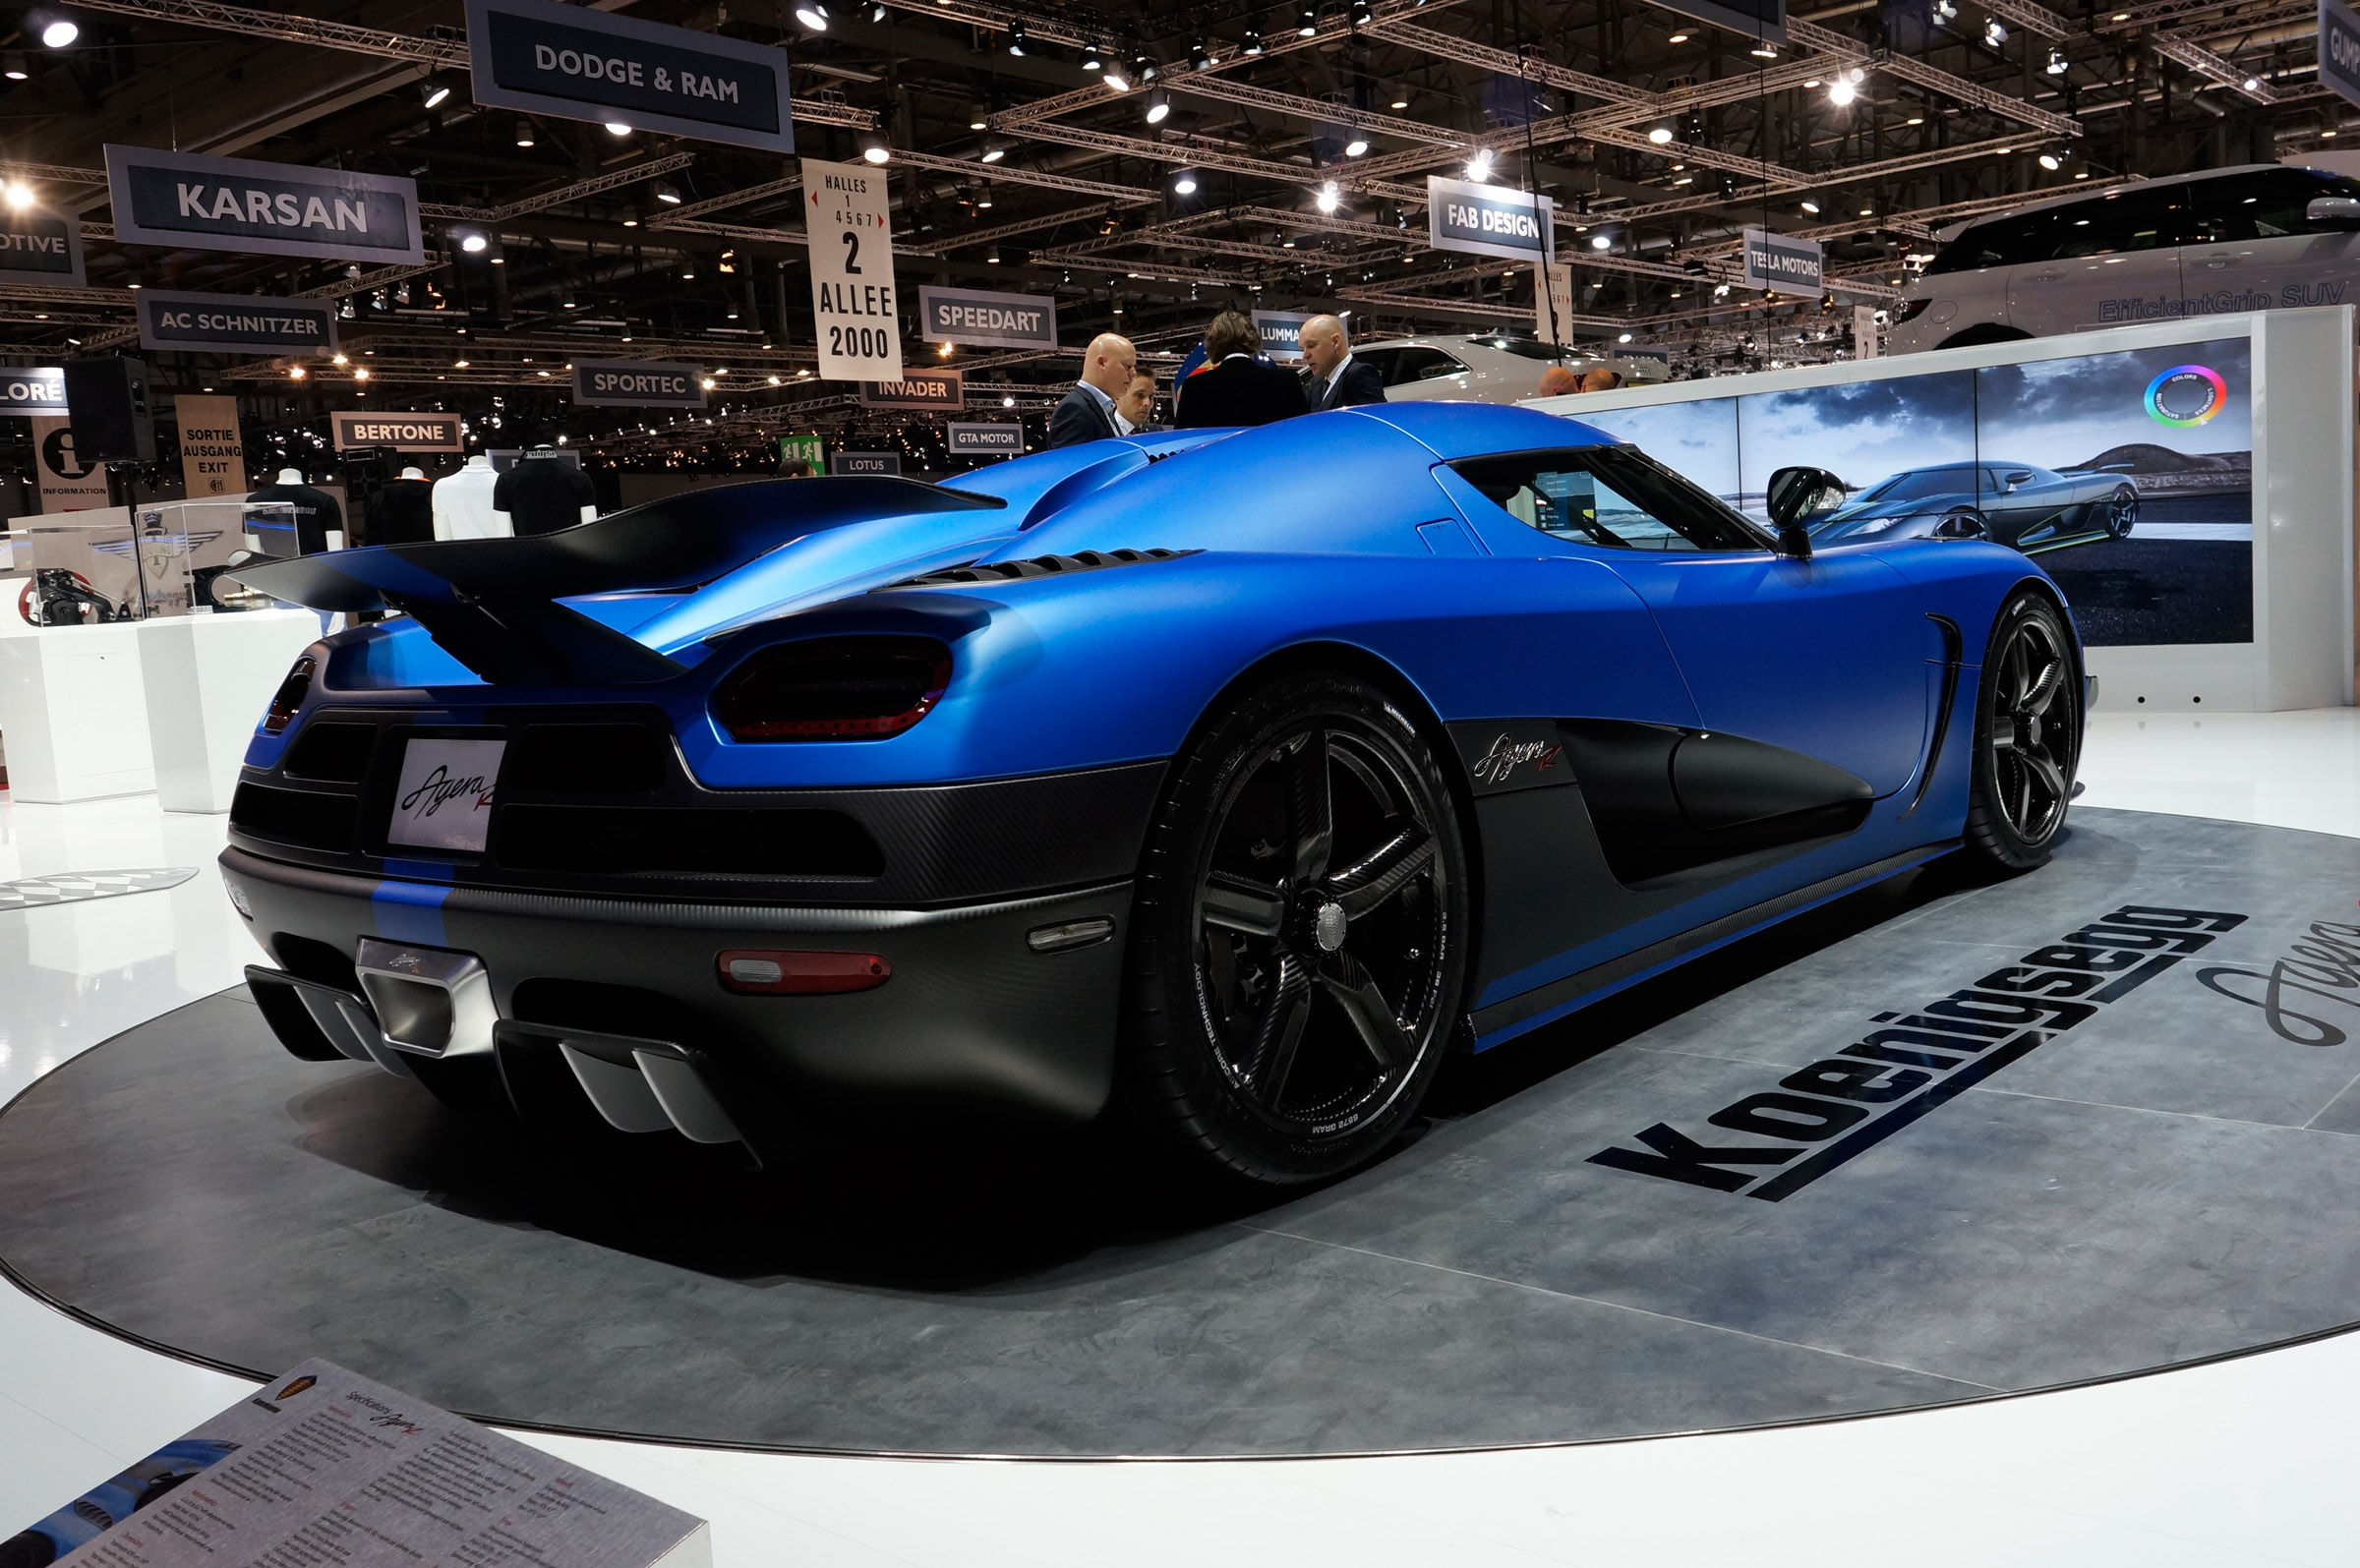 Agera One 1 >> 2014 Koenigsegg Agera R Engine | www.pixshark.com - Images Galleries With A Bite!